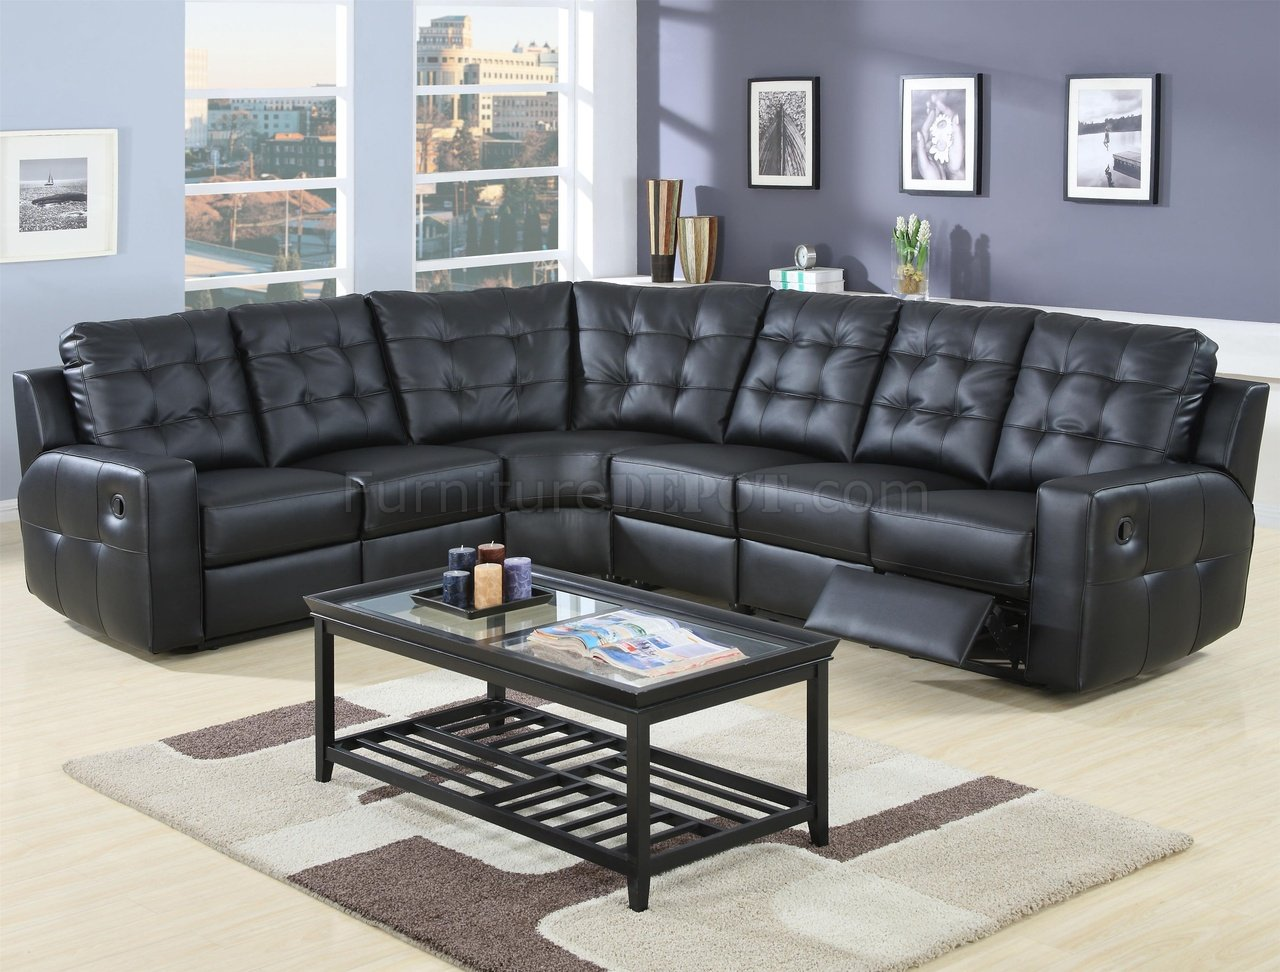 Sectional Sofas On Sale Black Bonded Leather Double Reclining